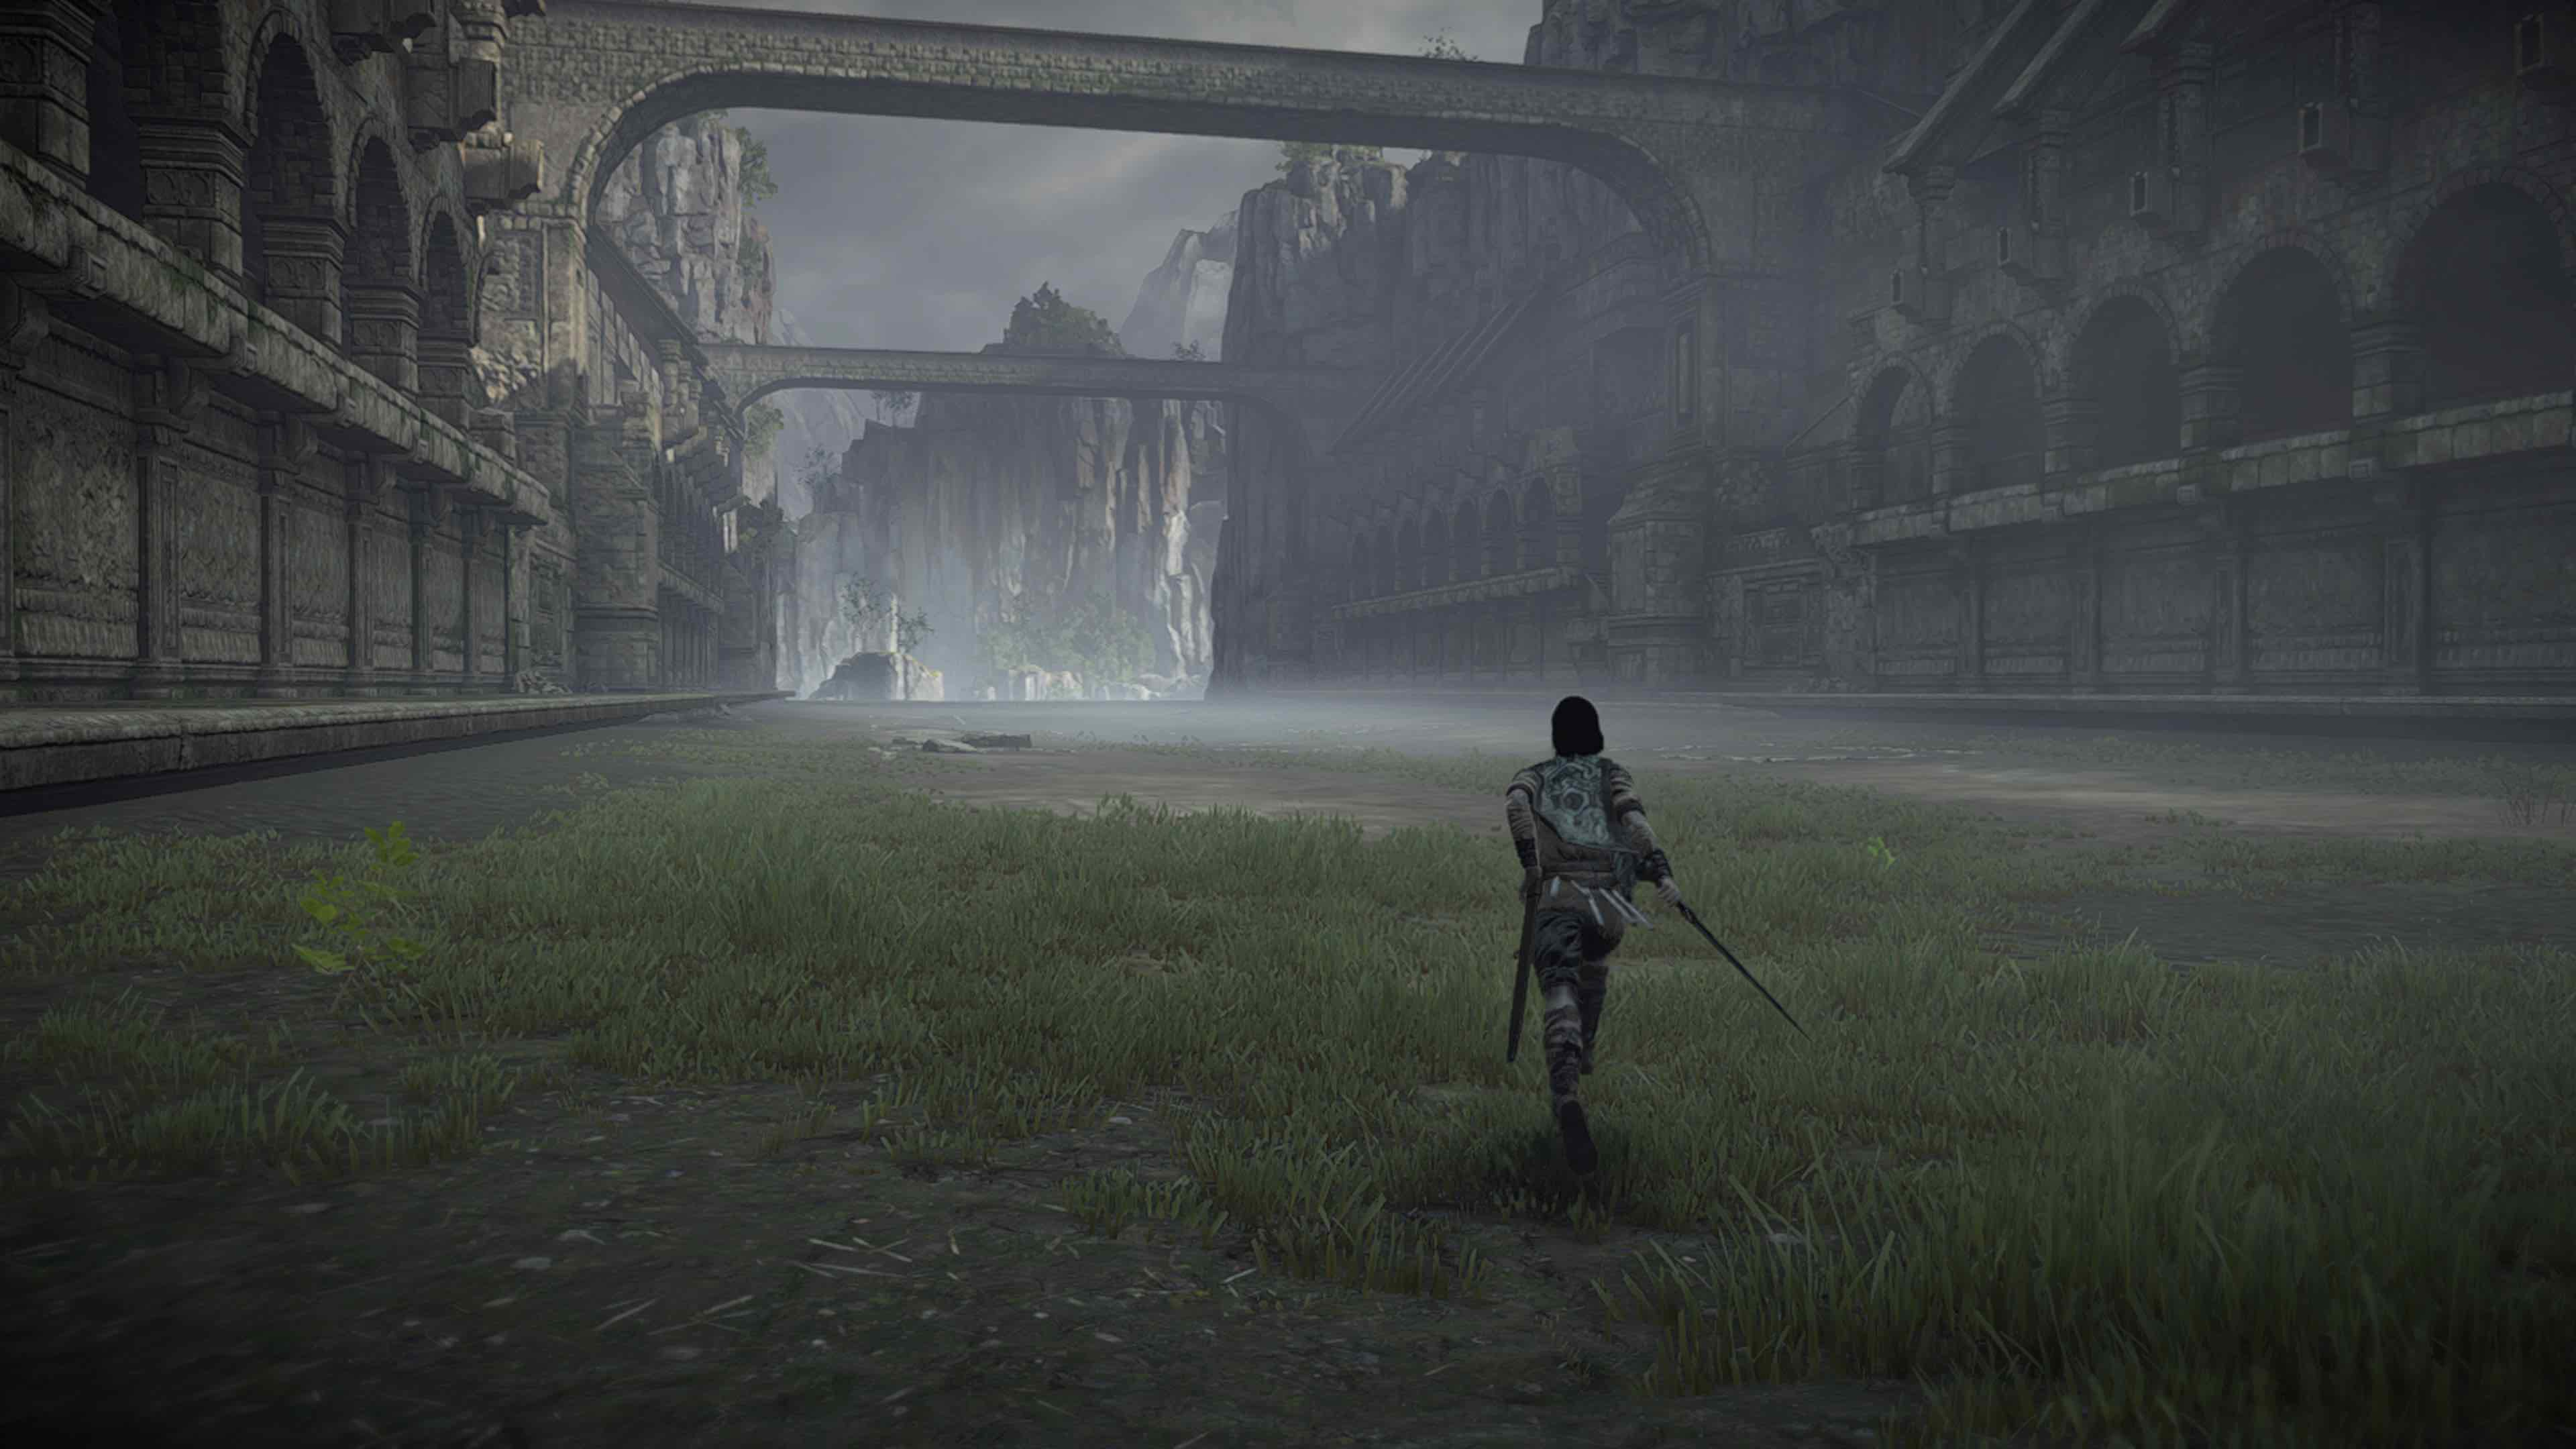 Shadow_of_the_Colossus_Coloso_15_2